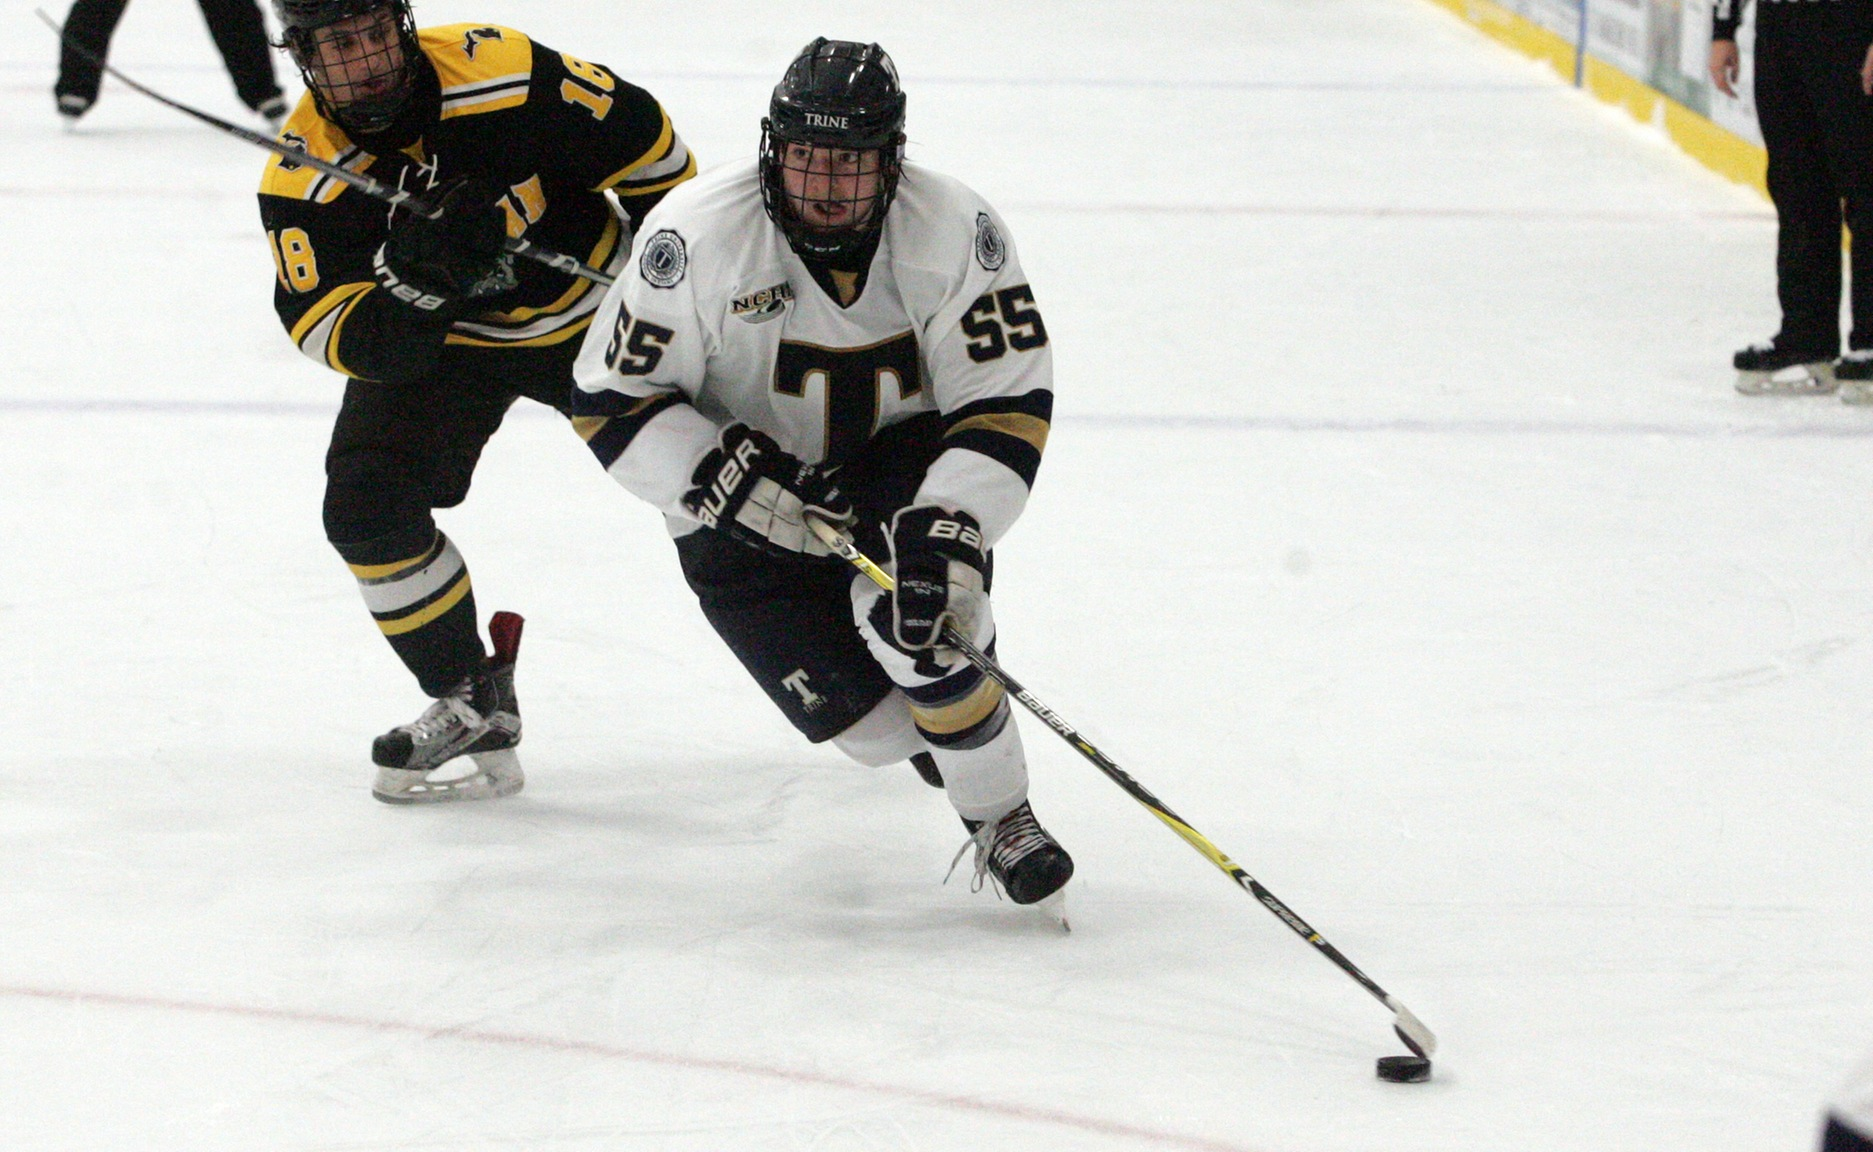 Men's Hockey Picks up First Win of Season